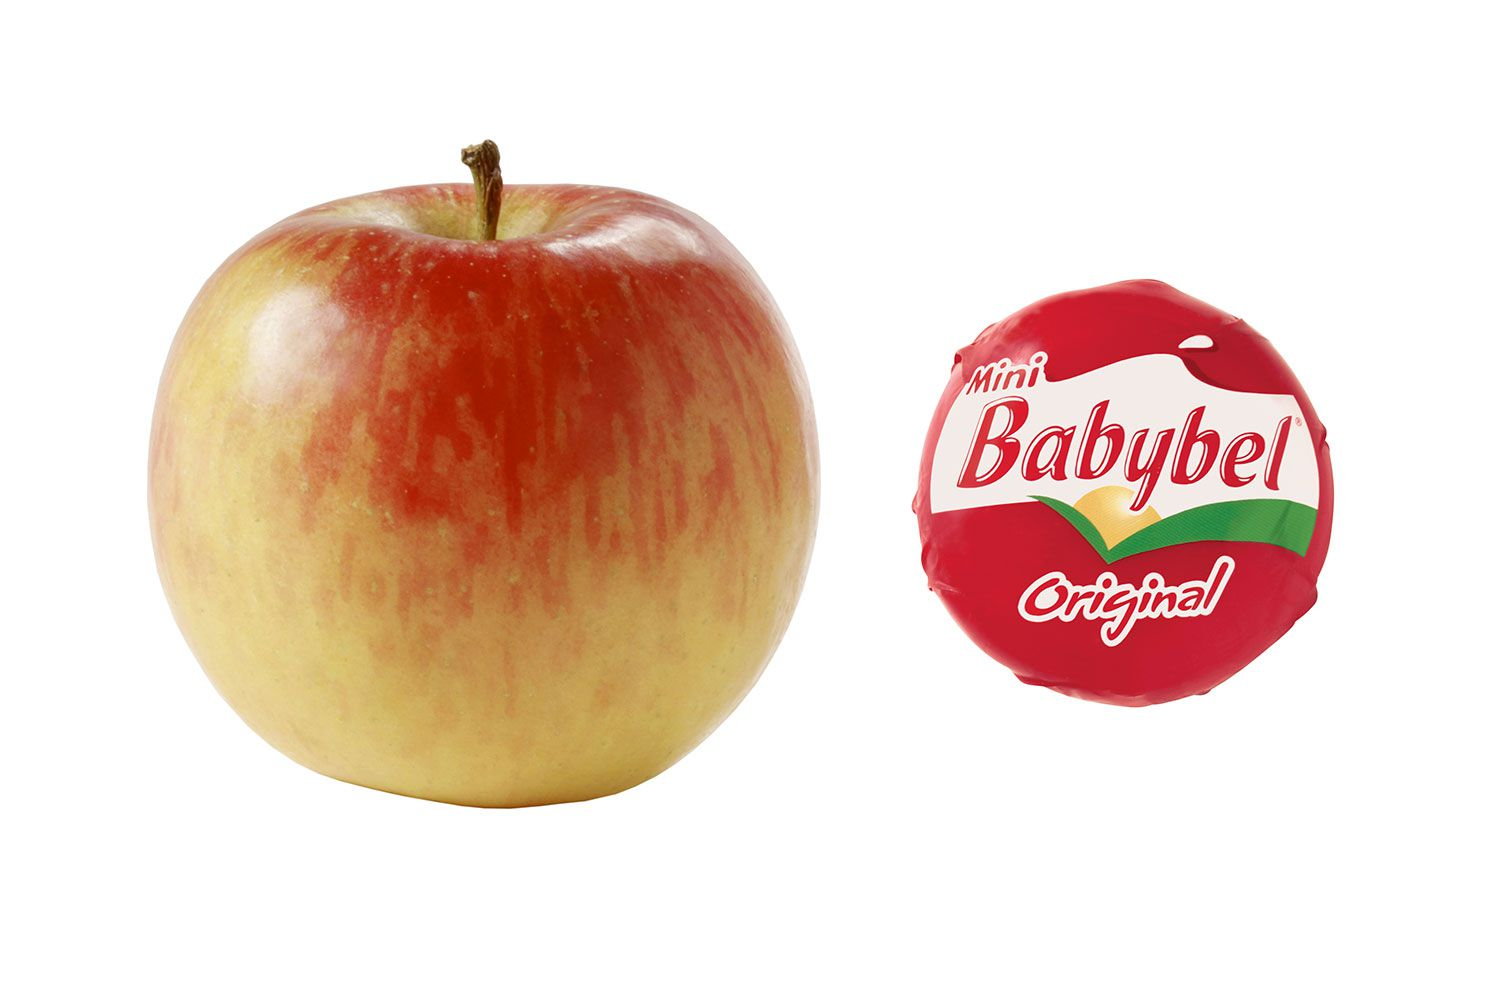 6 Foods to Eat Before a Workout: Apple with light cheese